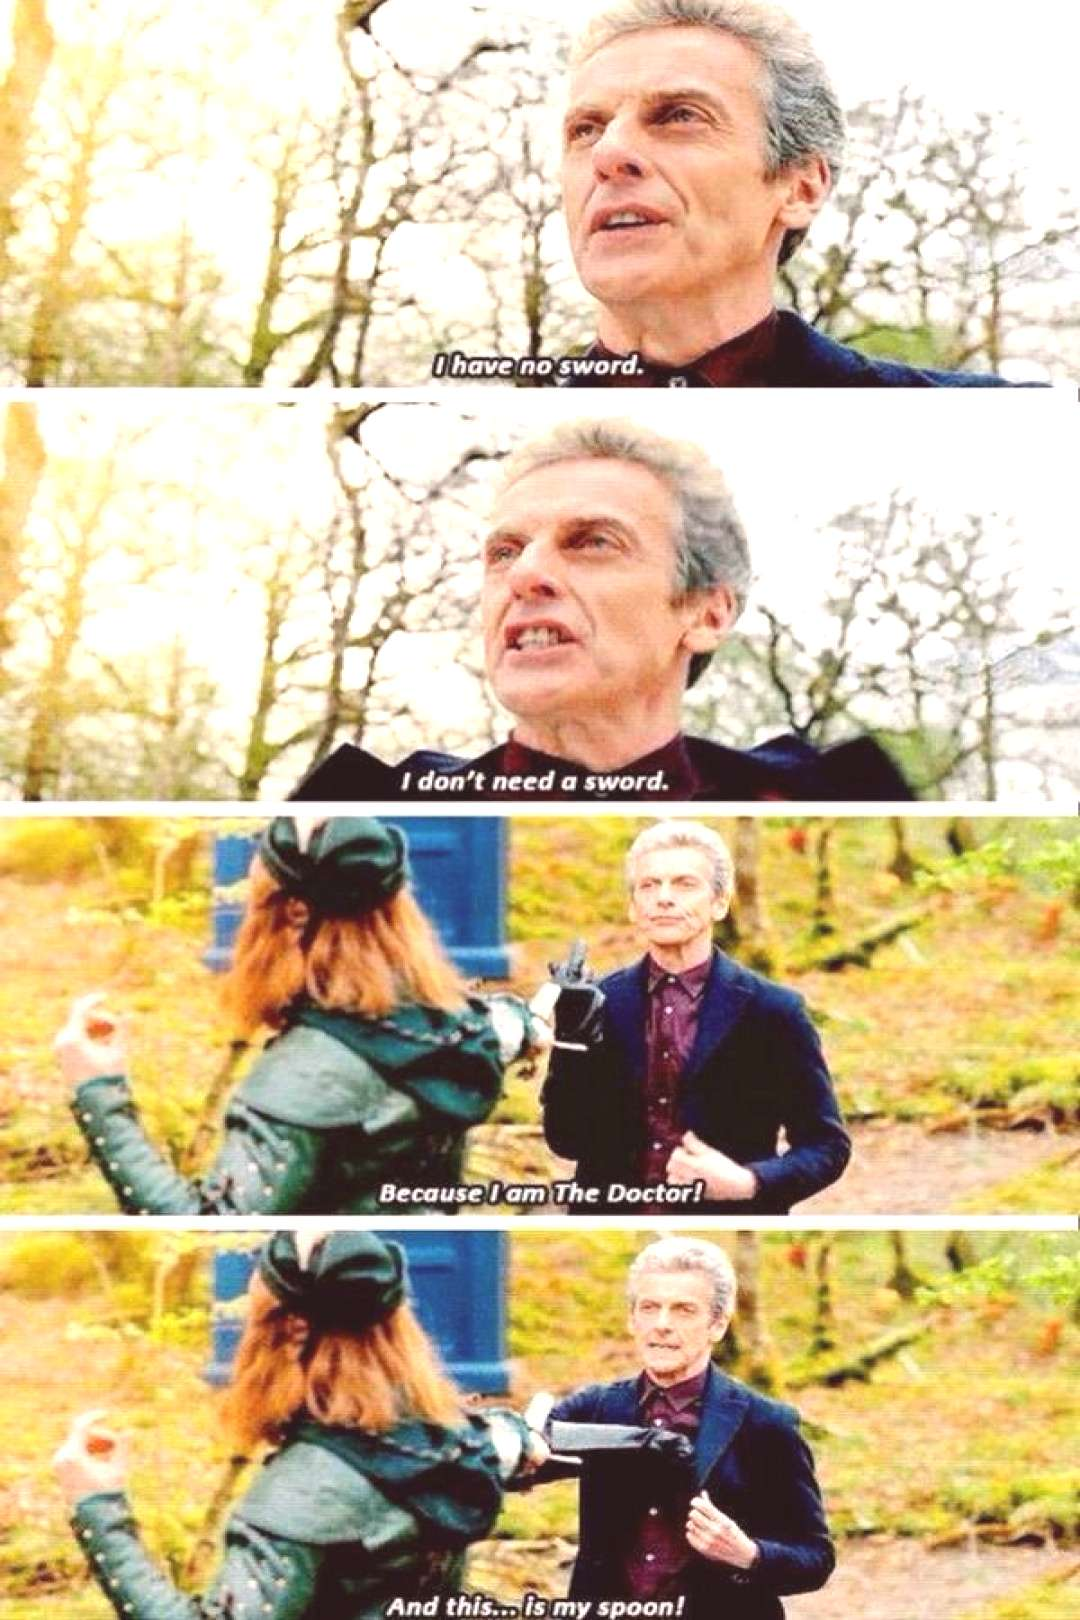 doctor who facts Sherlock Doctor who facts ; arzt,  der fakten ; docteur qui fait ; doctor que hech